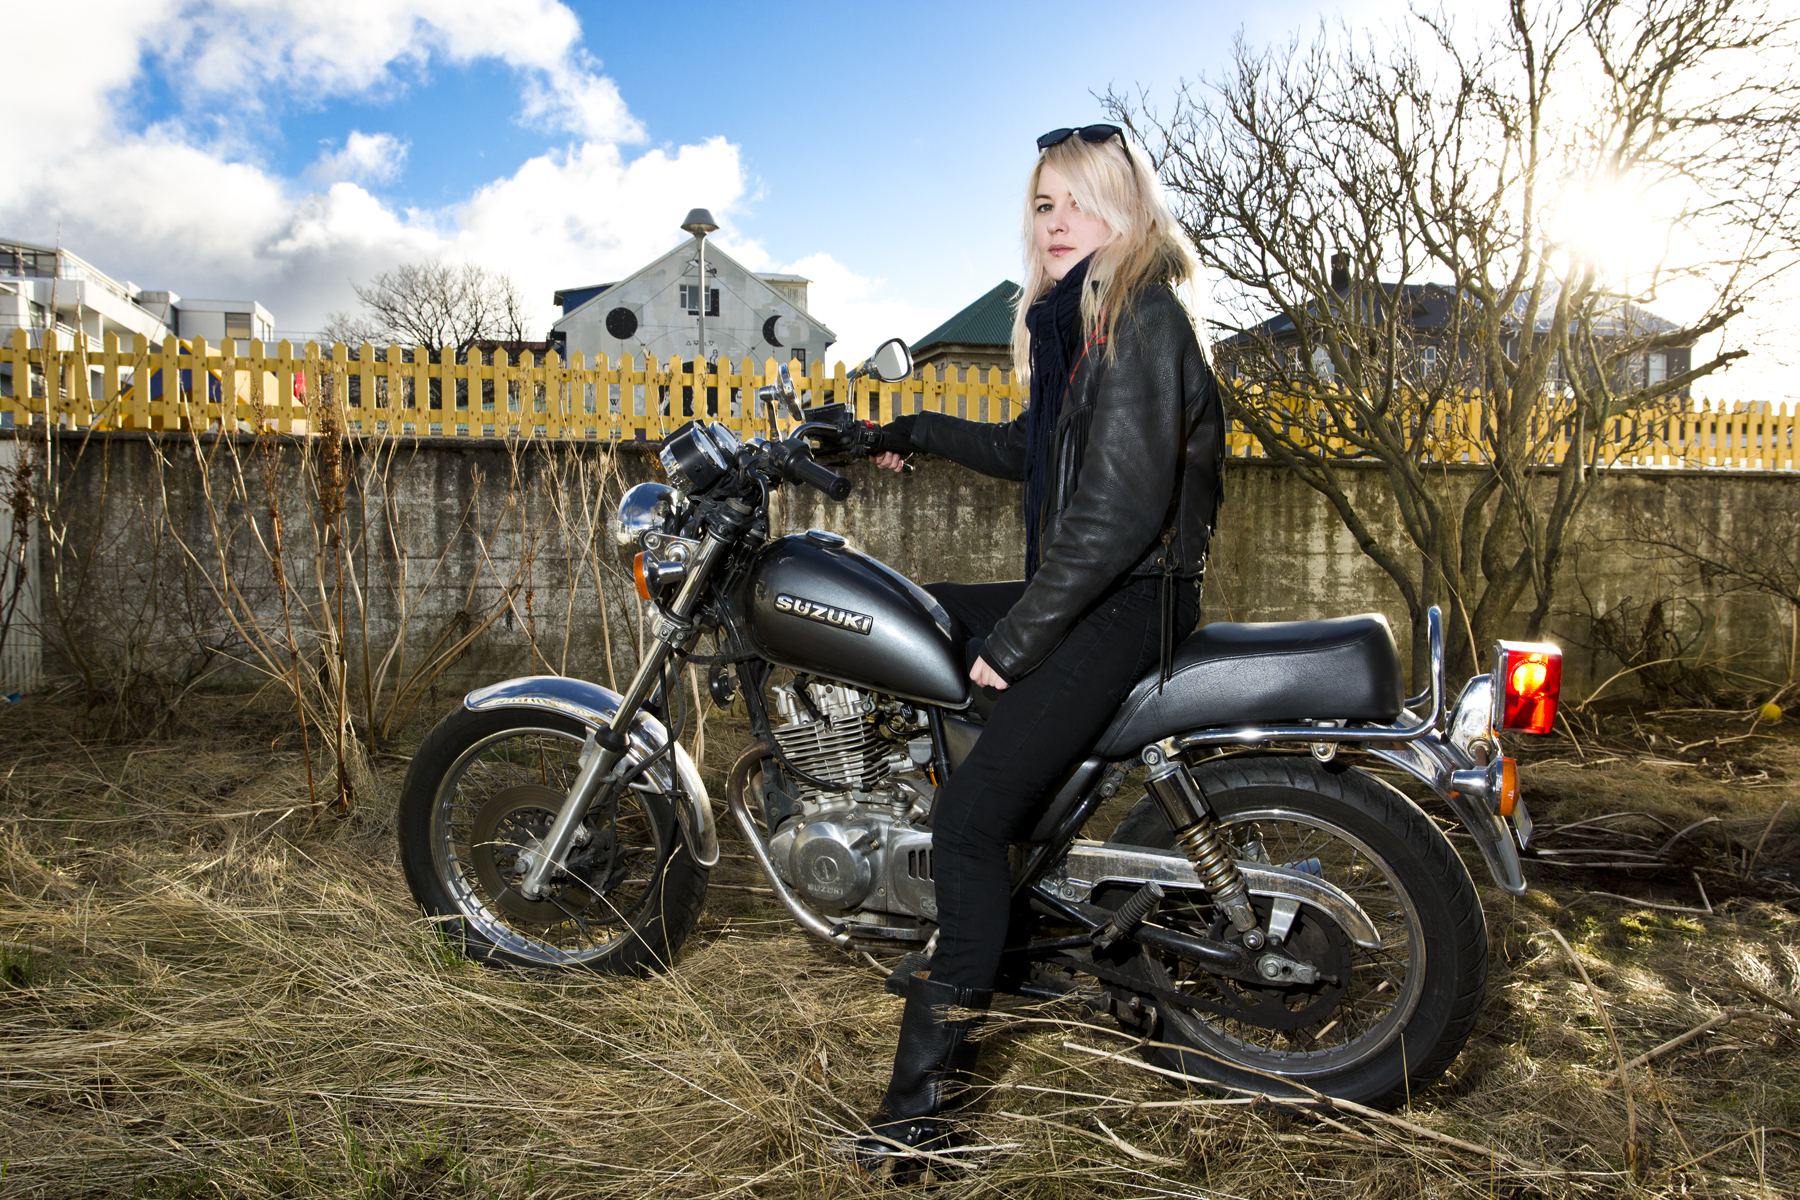 Karlotta Laufey, biker and lead guitarist for the band Vicky